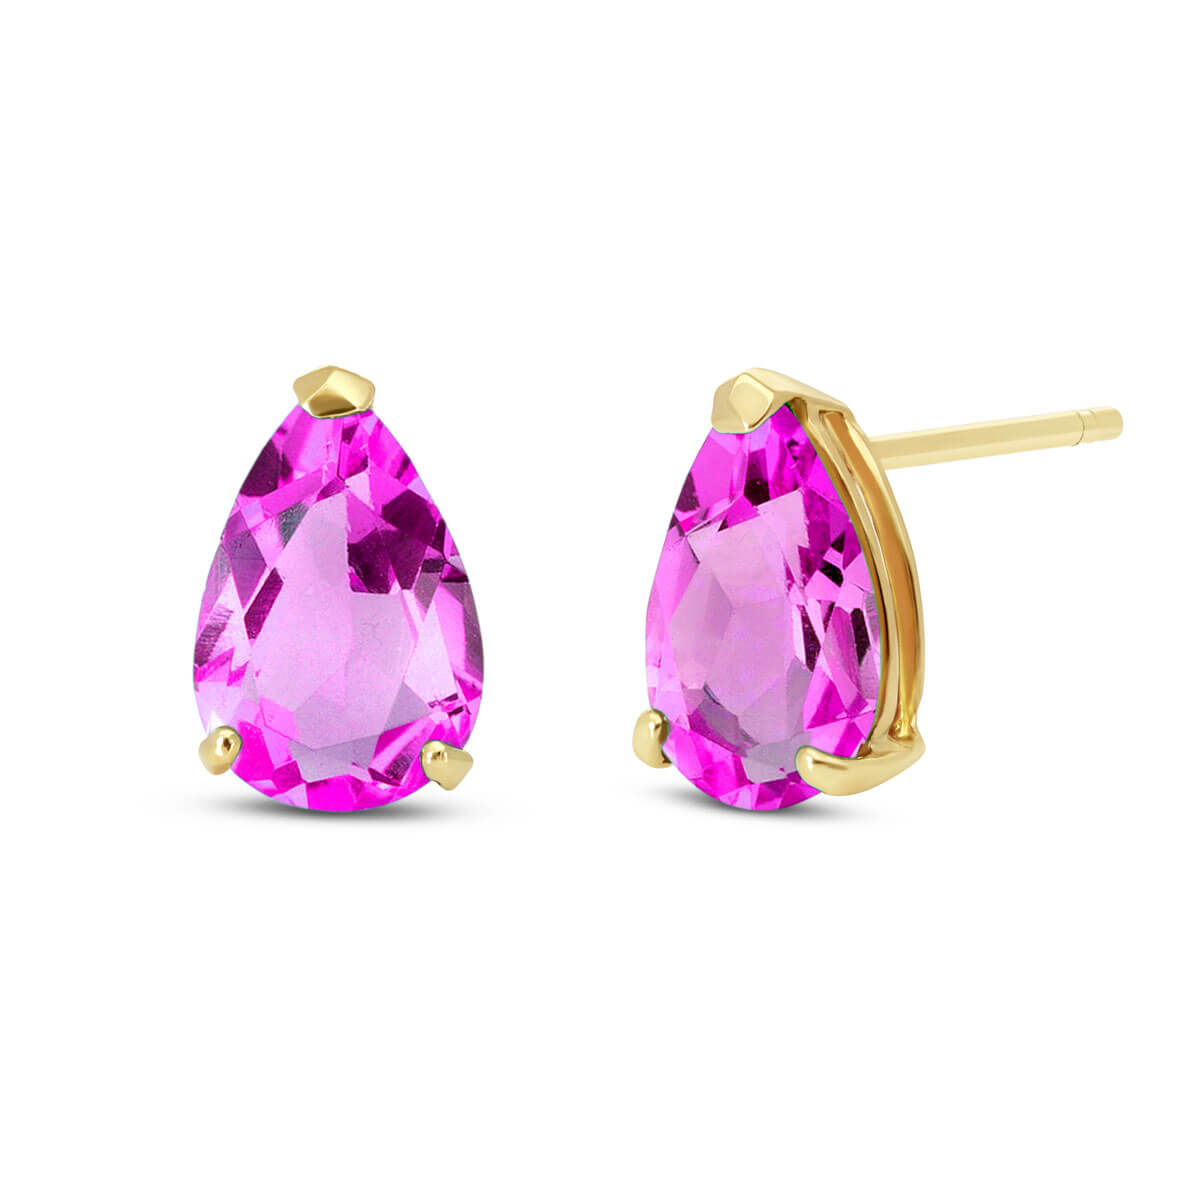 Pink Topaz Stud Earrings 3.15 ctw in 9ct Gold